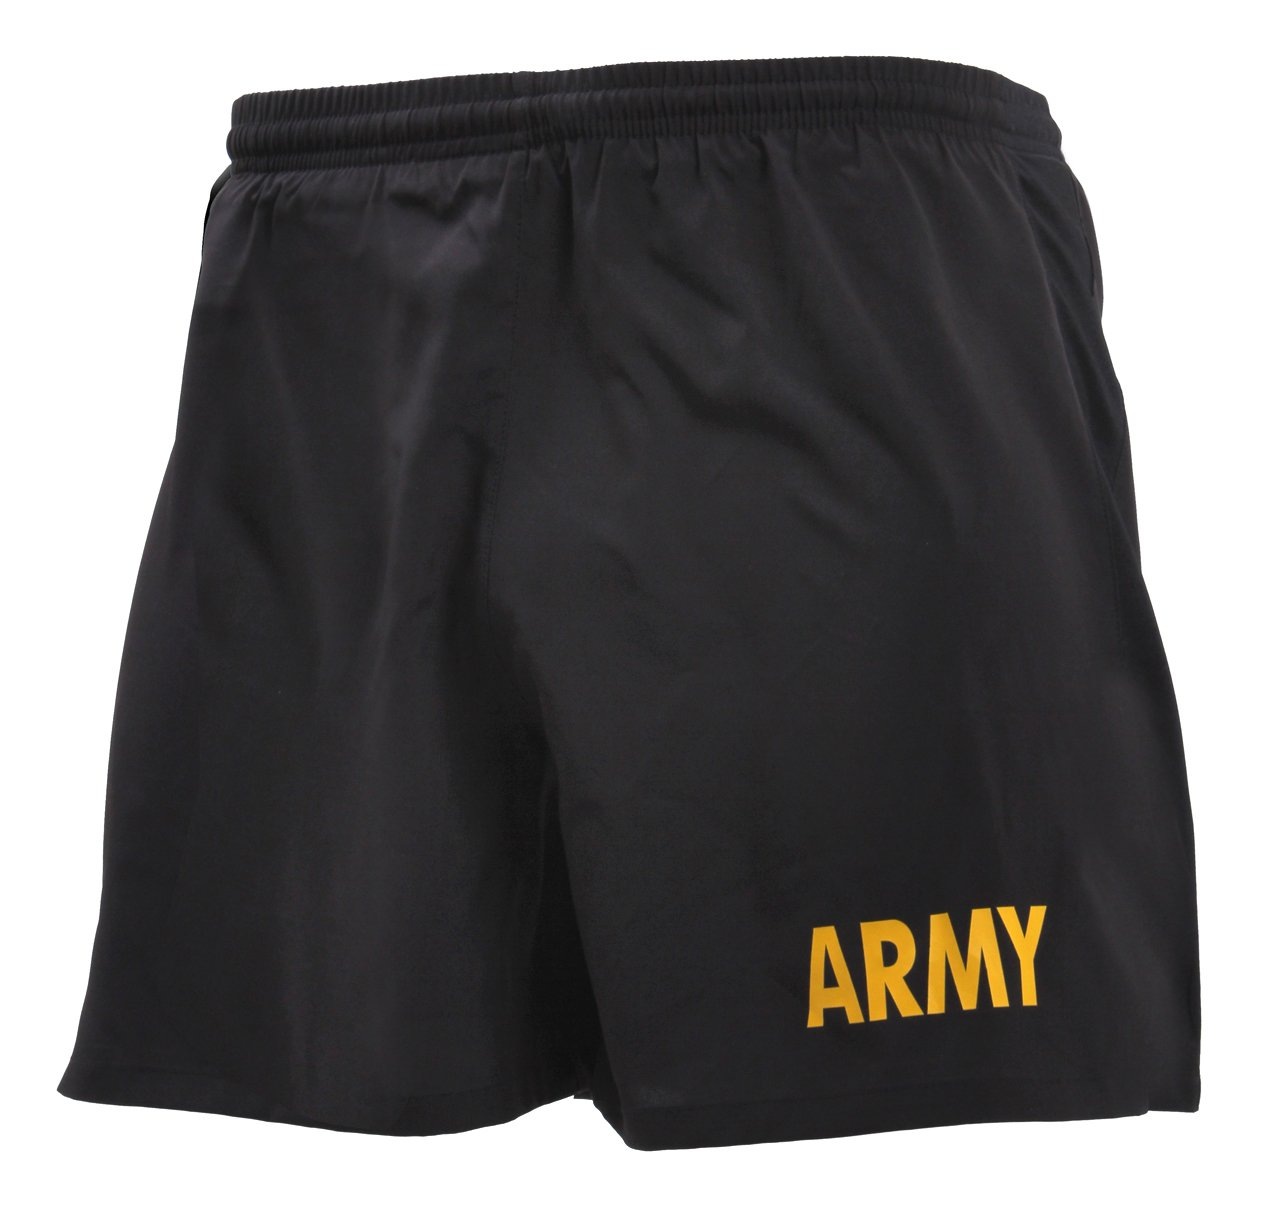 Rothco Army Physical Training Shorts, XS Black/Gold by Rothco